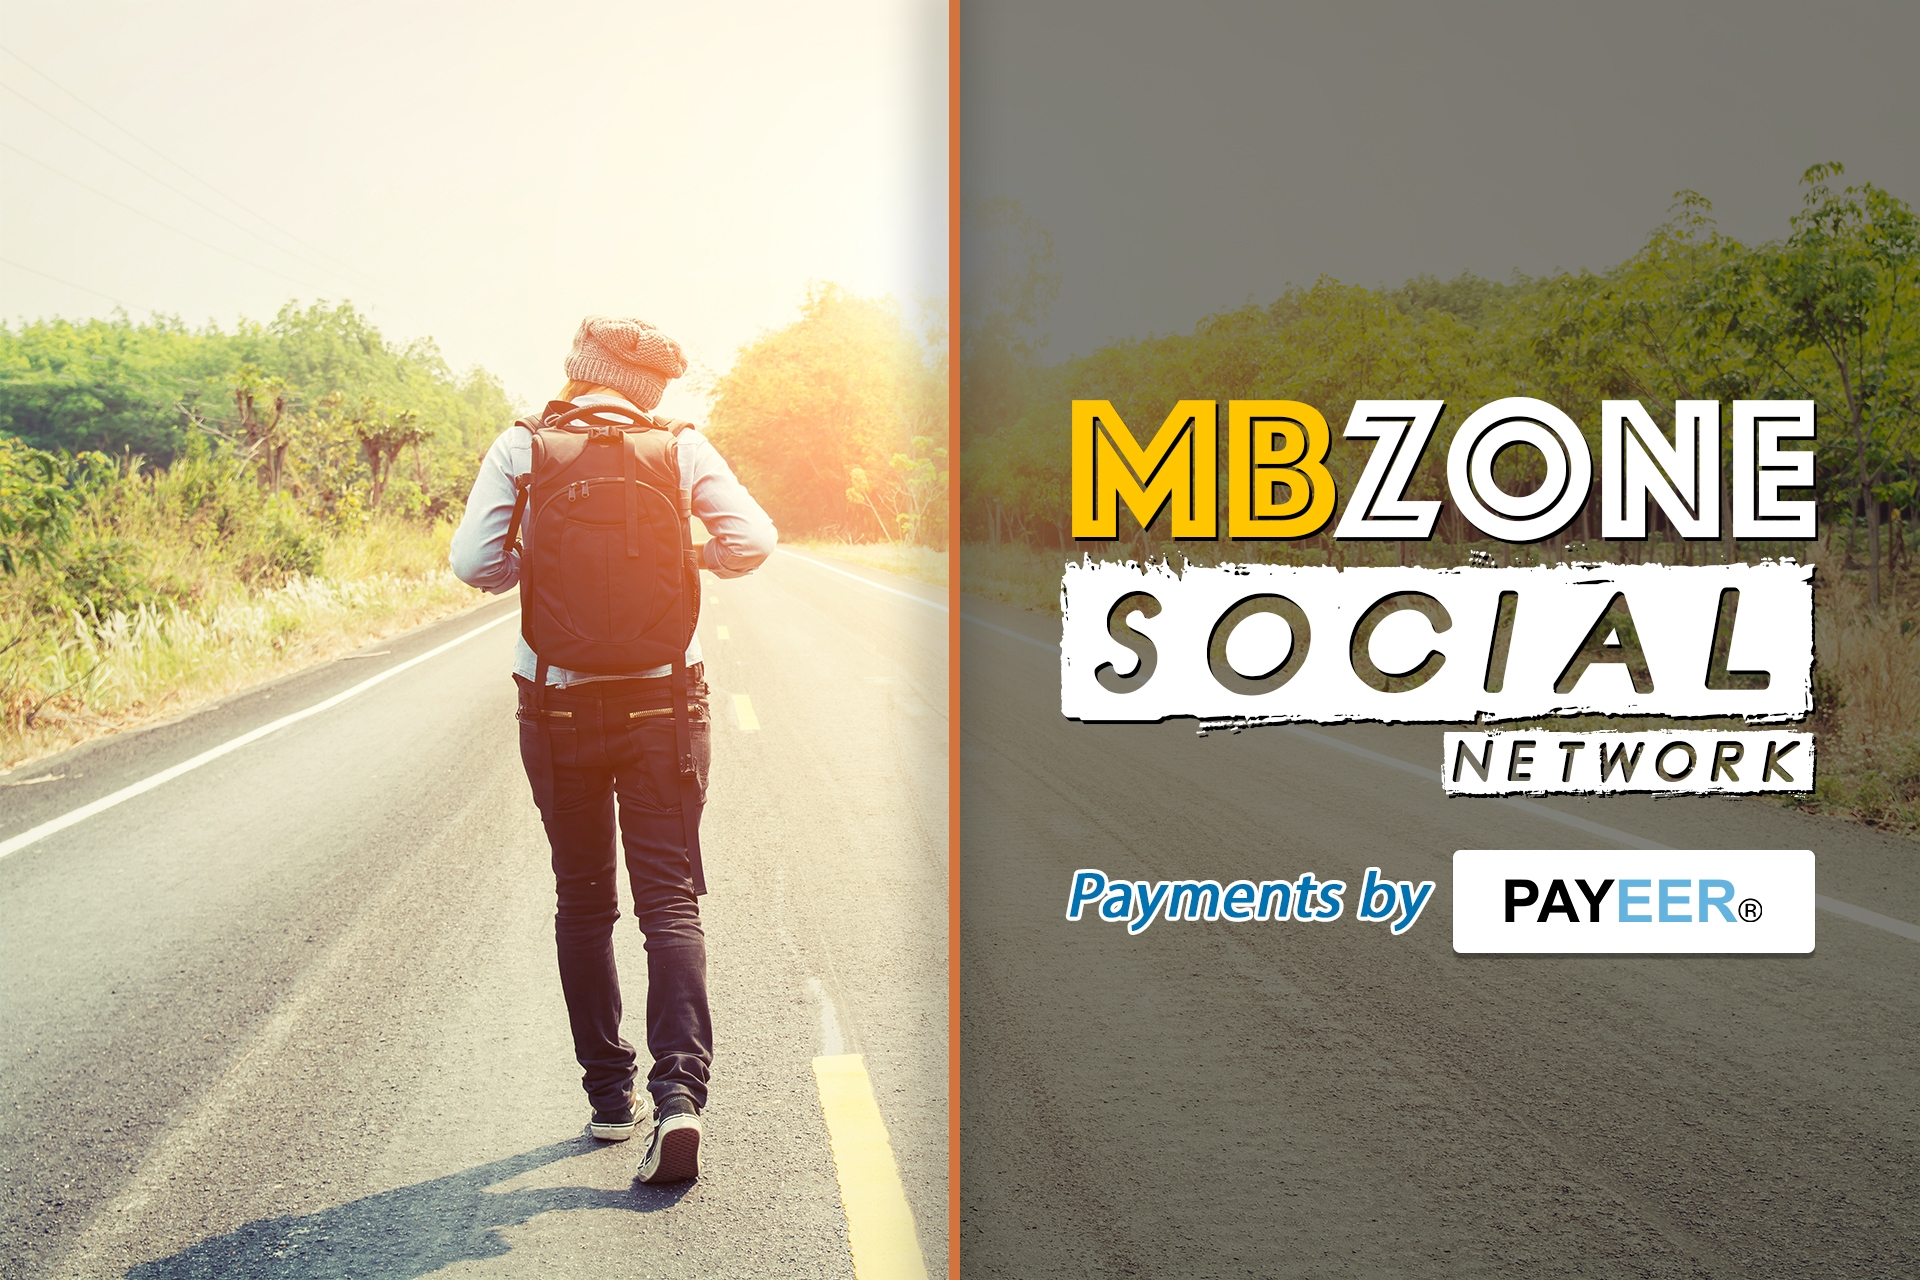 Welcome to MBZone